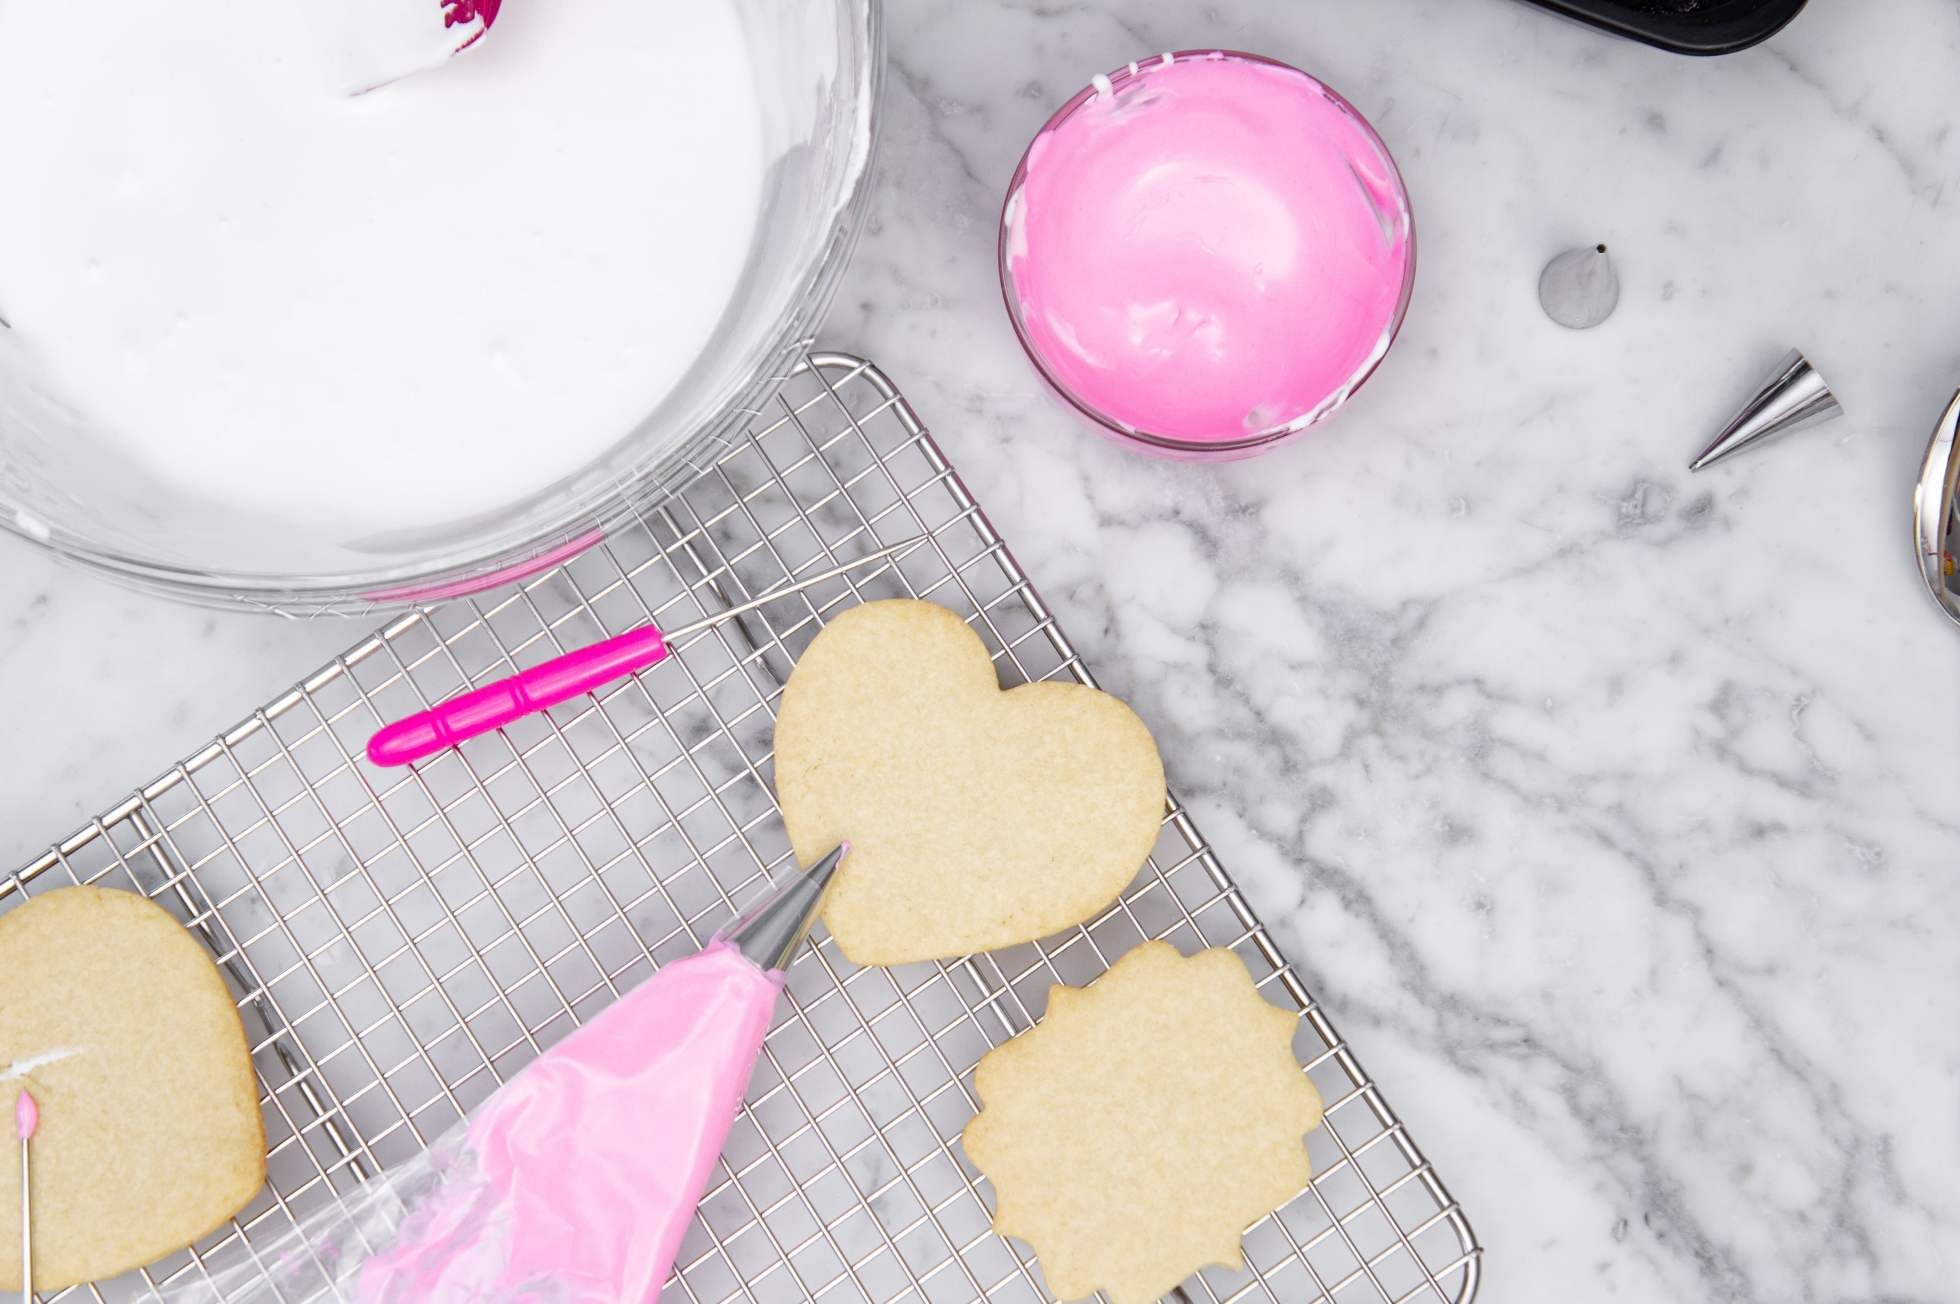 These Gluten-Free Sugar Cookie Cut Outs are soft and taste amazing. Make easy gluten-free sugar cookie cut outs that keep their shape, perfect for decorated cookies. This is a no-chill recipe! #glutenfreecookies #glutenfreerecipes #easyglutenfreecookies #thebestglutenfreesugarcookies #glutenfreecutouts #glutenfreesugarcookies #nochillcookierecipe